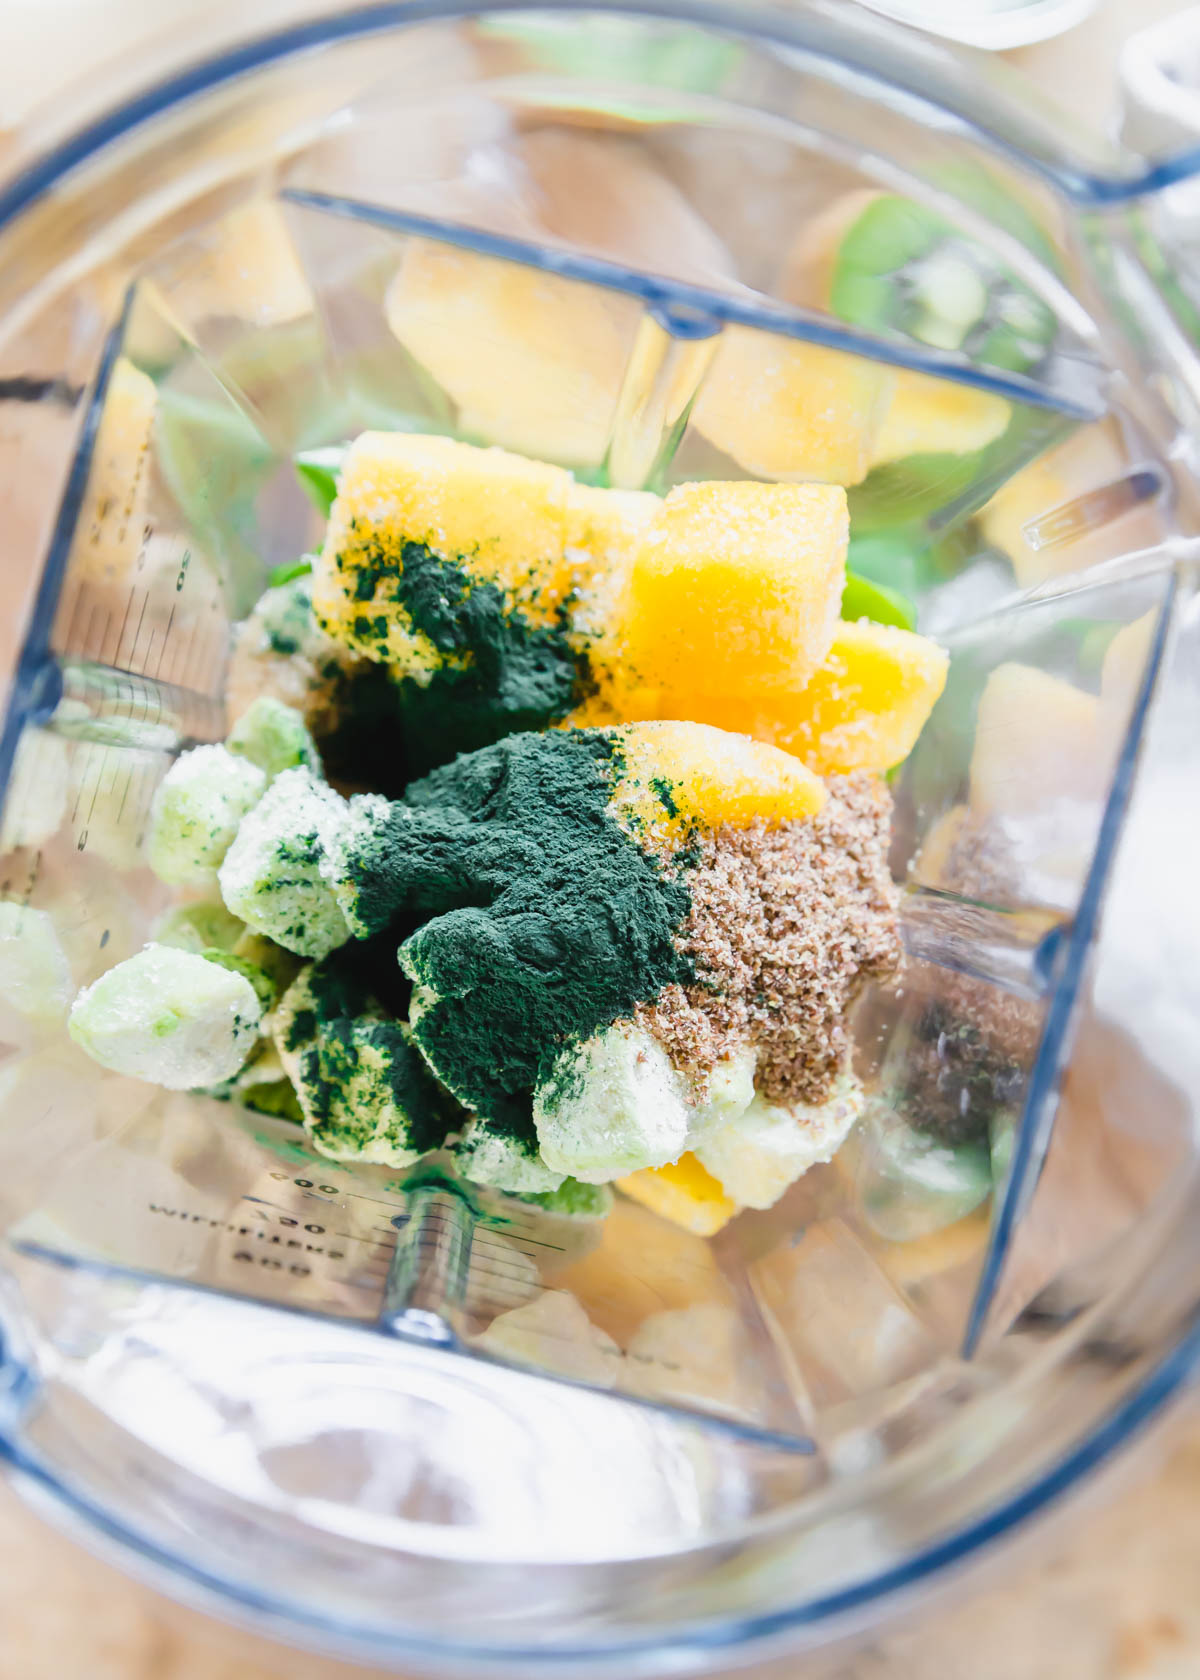 spirulina, mango, banana, kiwi, baby greens and flax seeds in the blender to make a smoothie